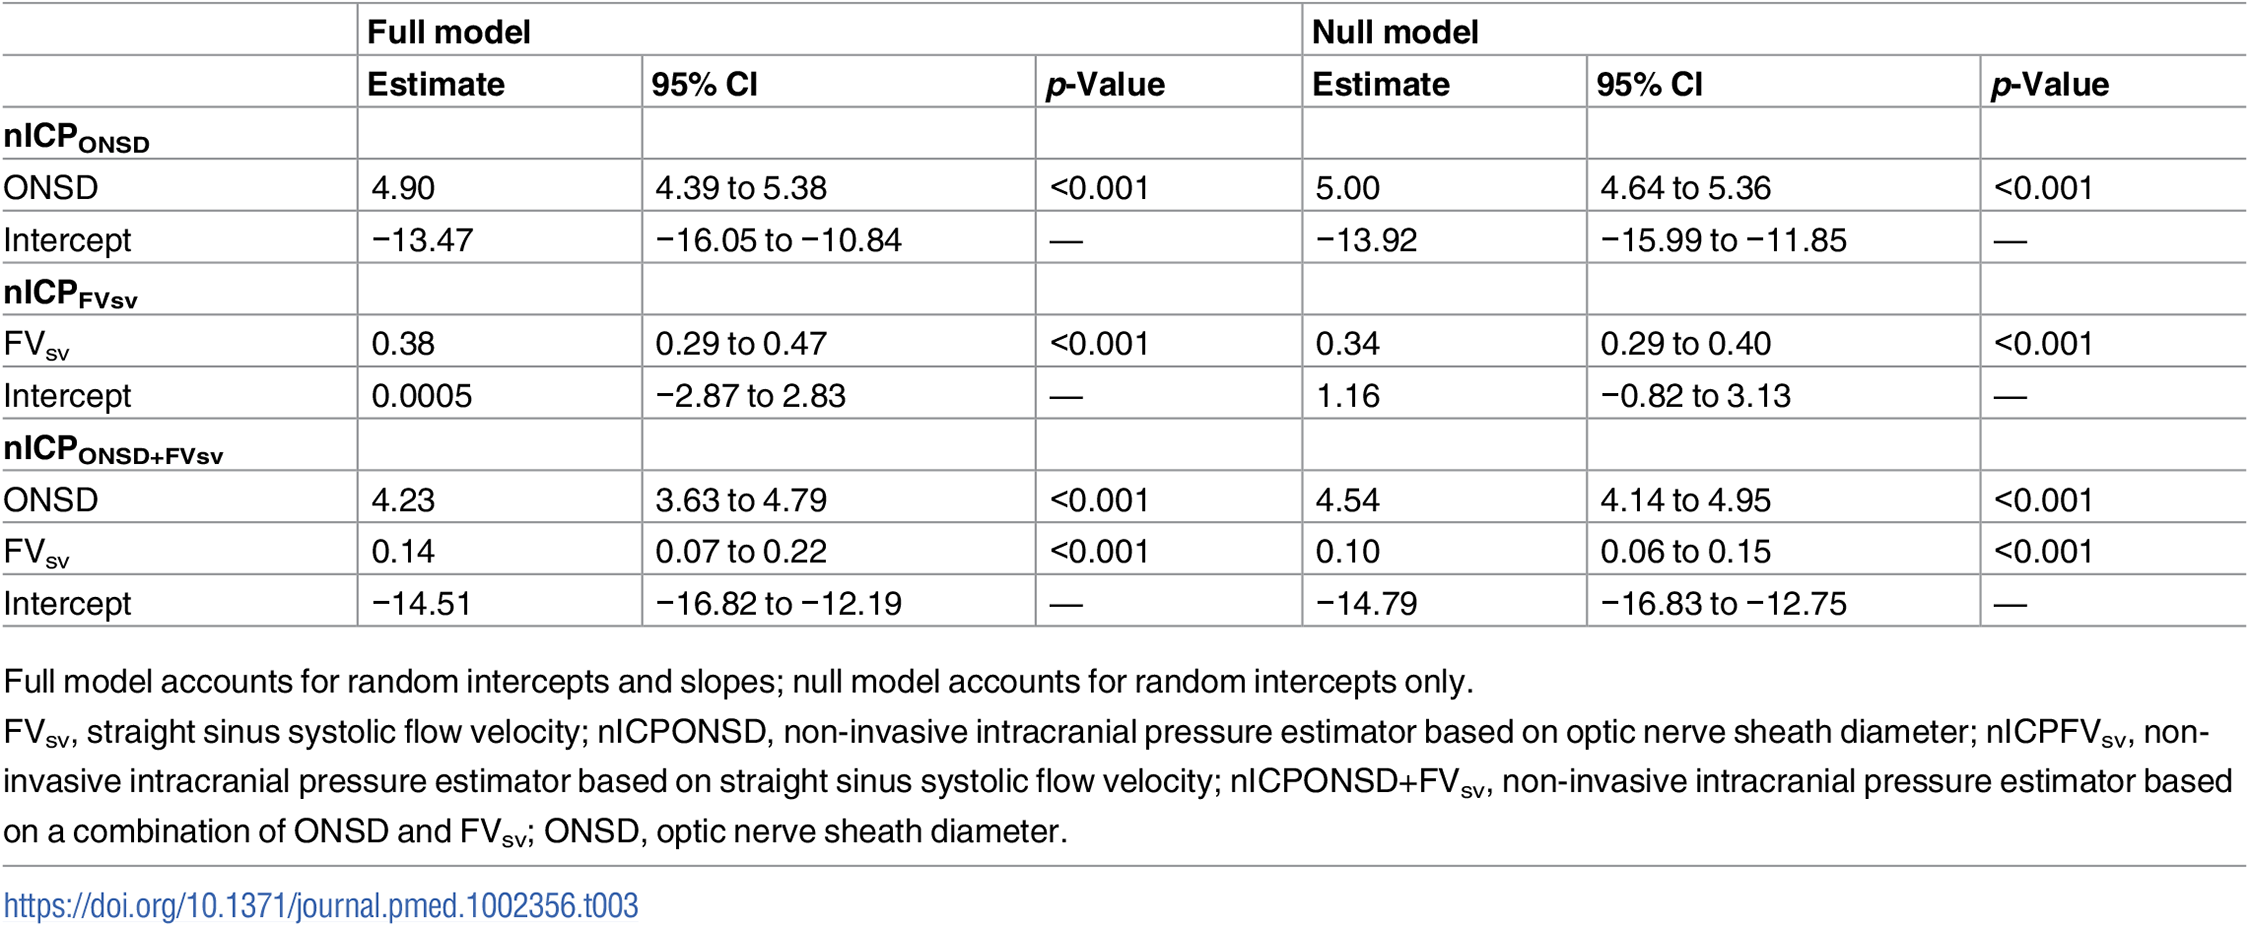 Summary of the linear mixed effects models of ICP and the non-invasive estimators across all measurement points (N = 445).